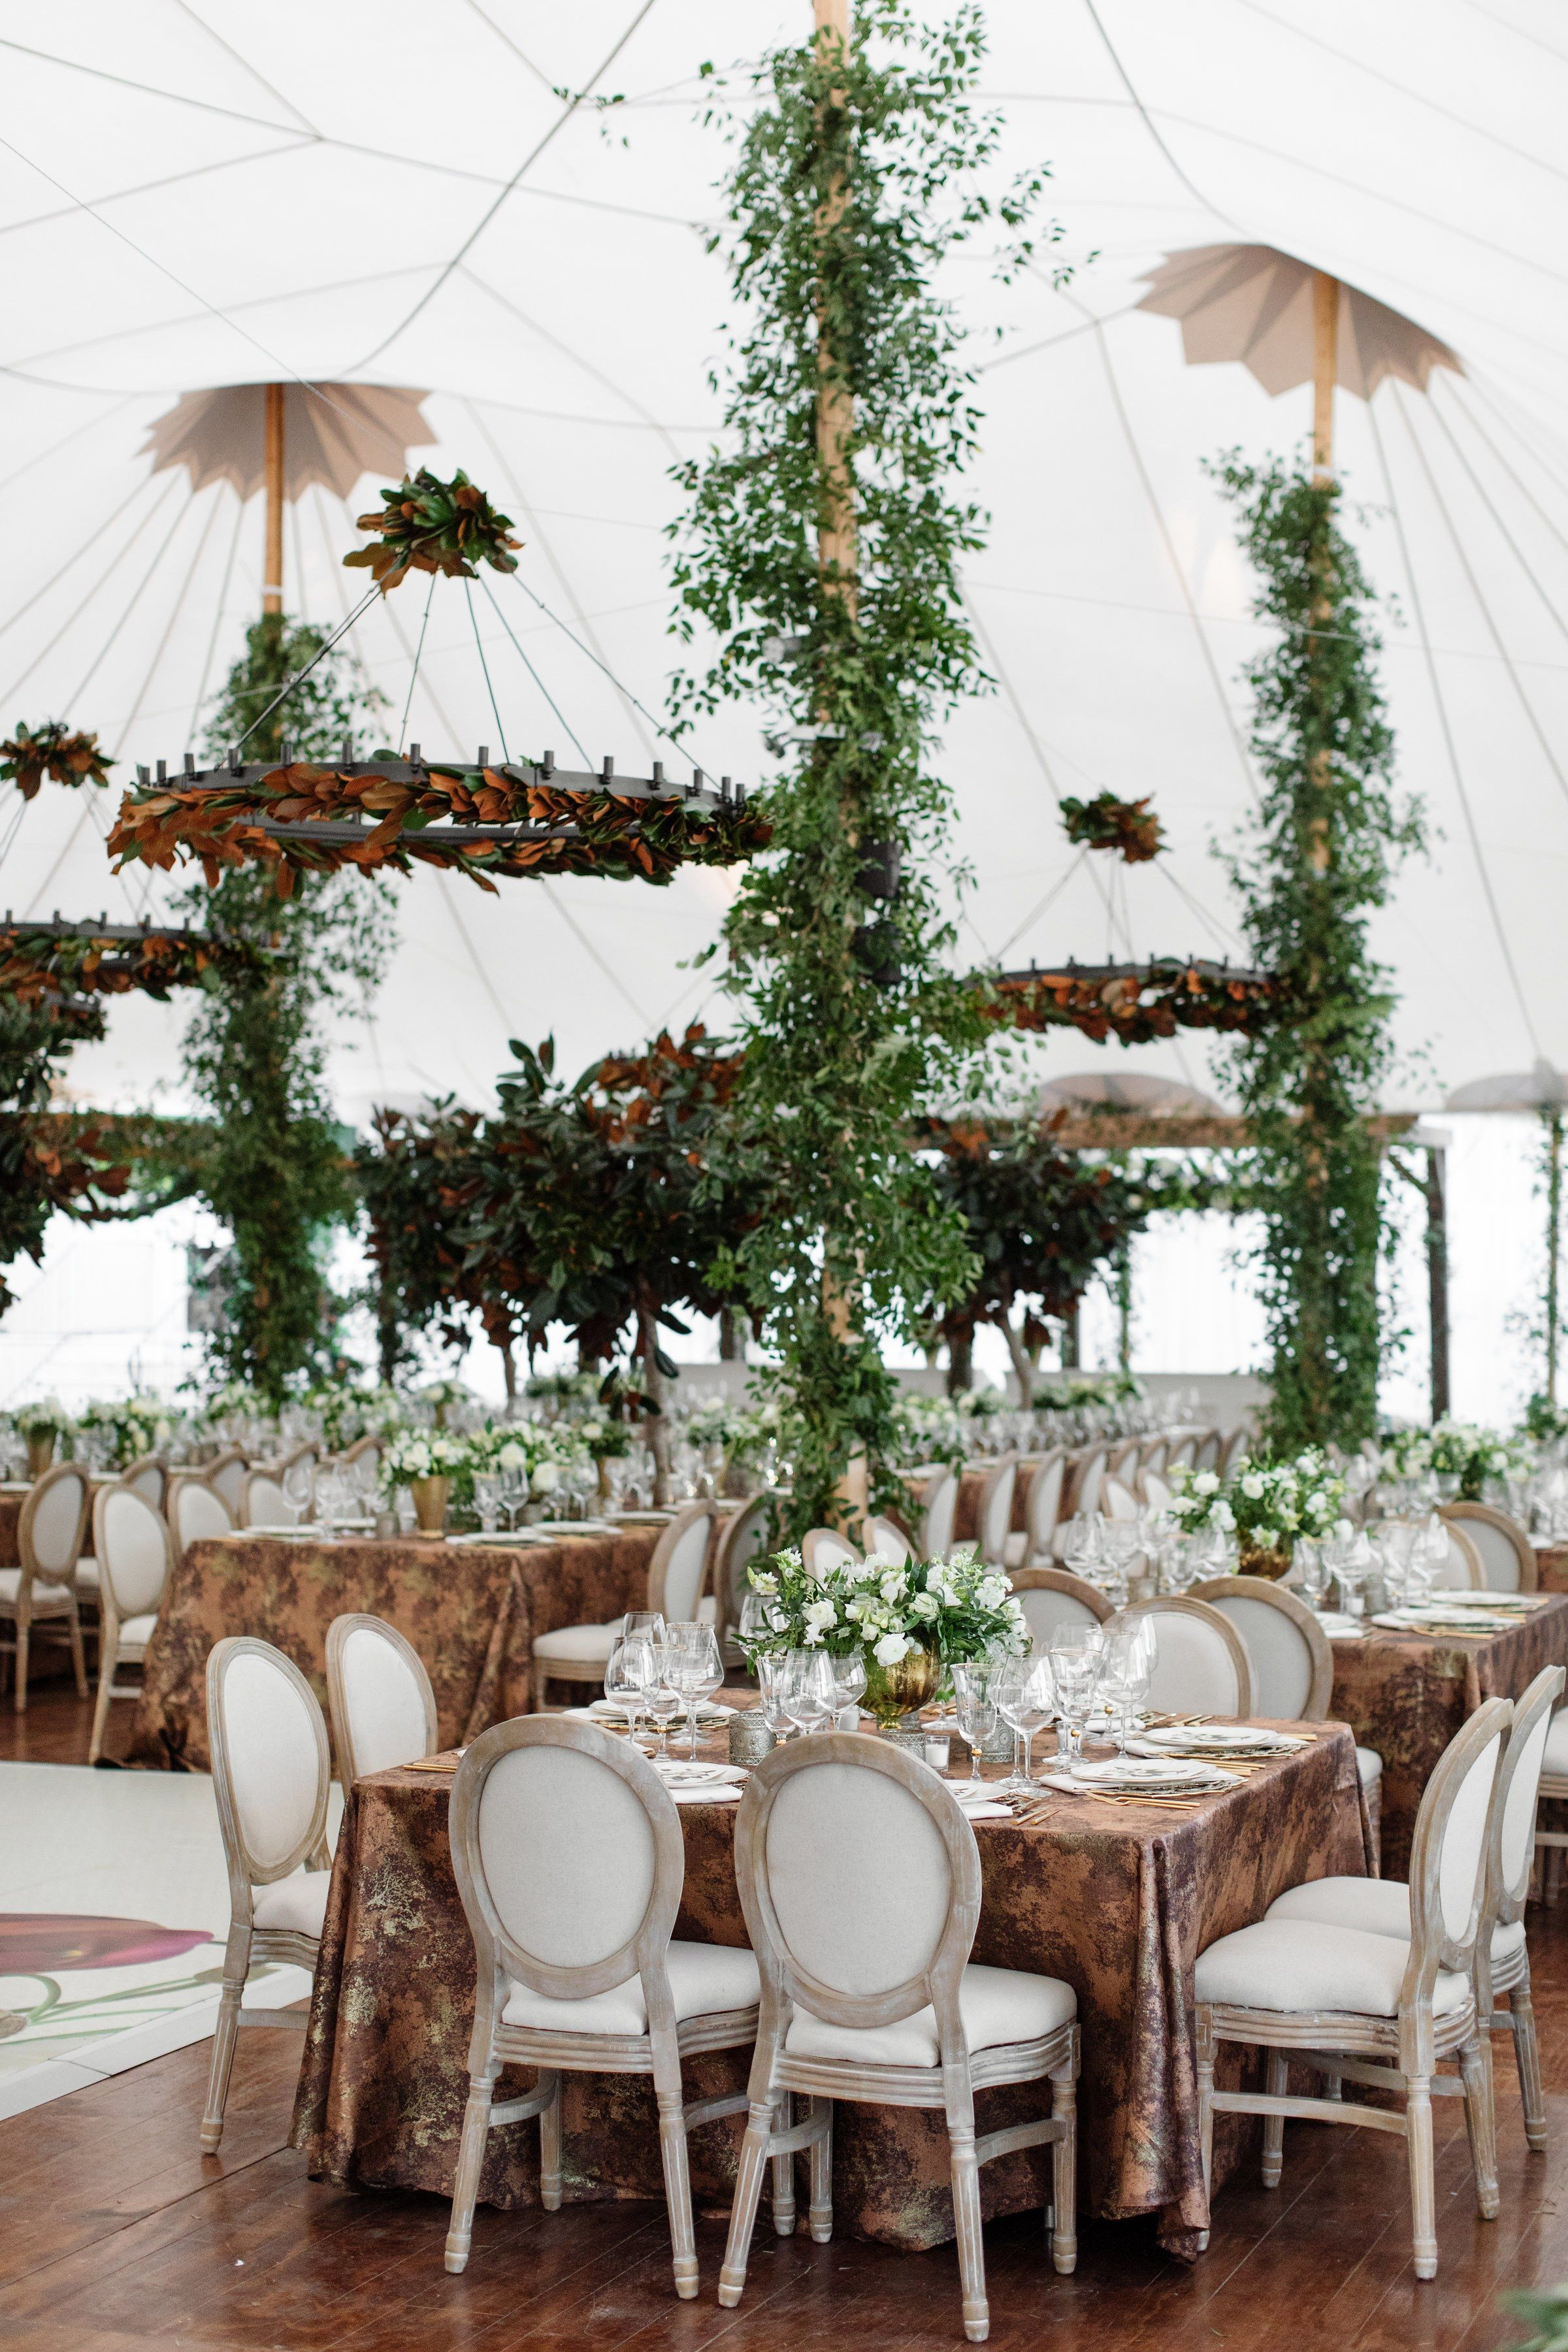 25 Breathtaking Tents for Your Outdoor Wedding Brides